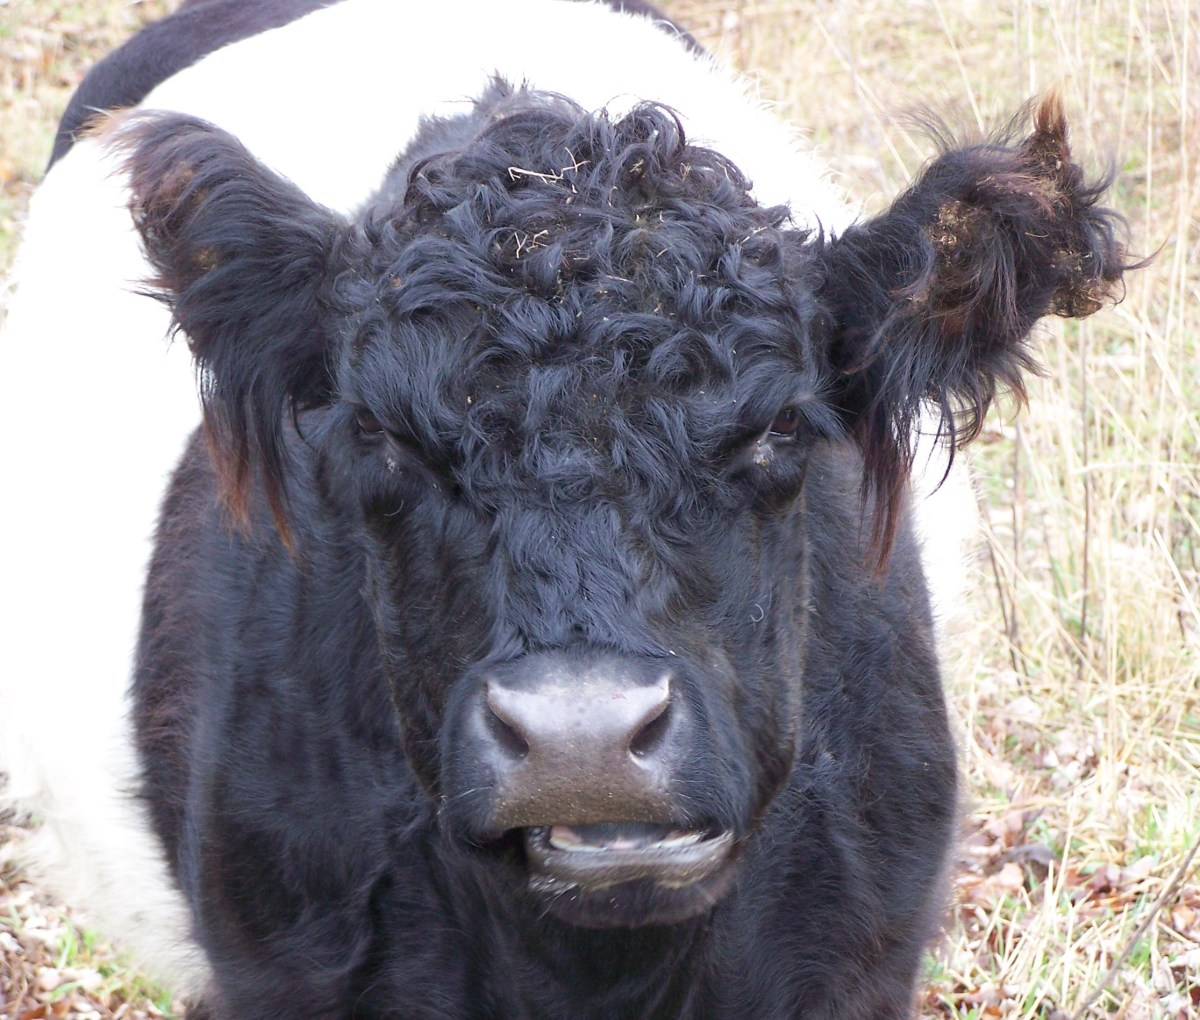 Emma a 6 year old Beltie cow showing off her thick curly coat